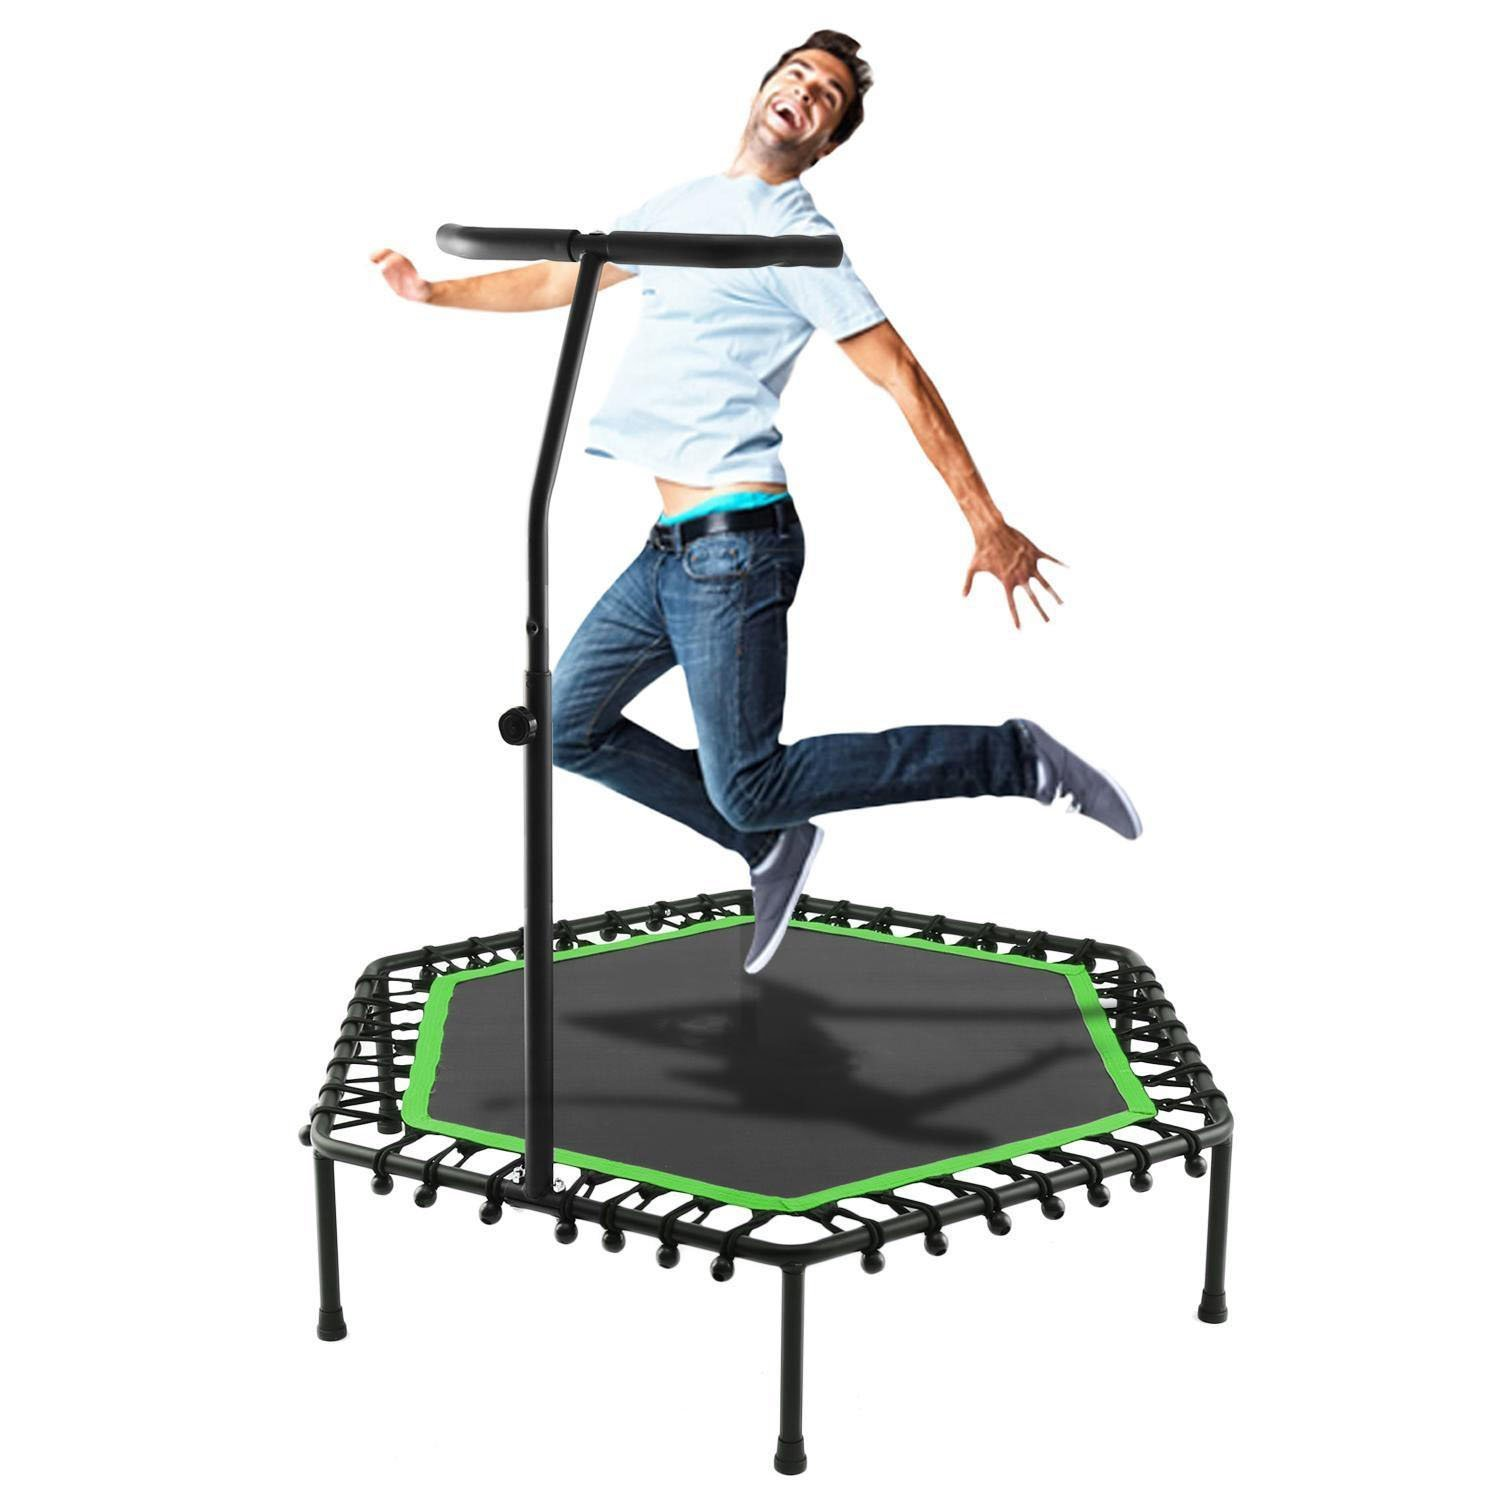 "Vividy Mini Trampoline, 50"" Indoor Safe Fitness Cardio Trampoline Trainer with Adjustable Handrail for Kids Adults Load 220lbs (Green)"